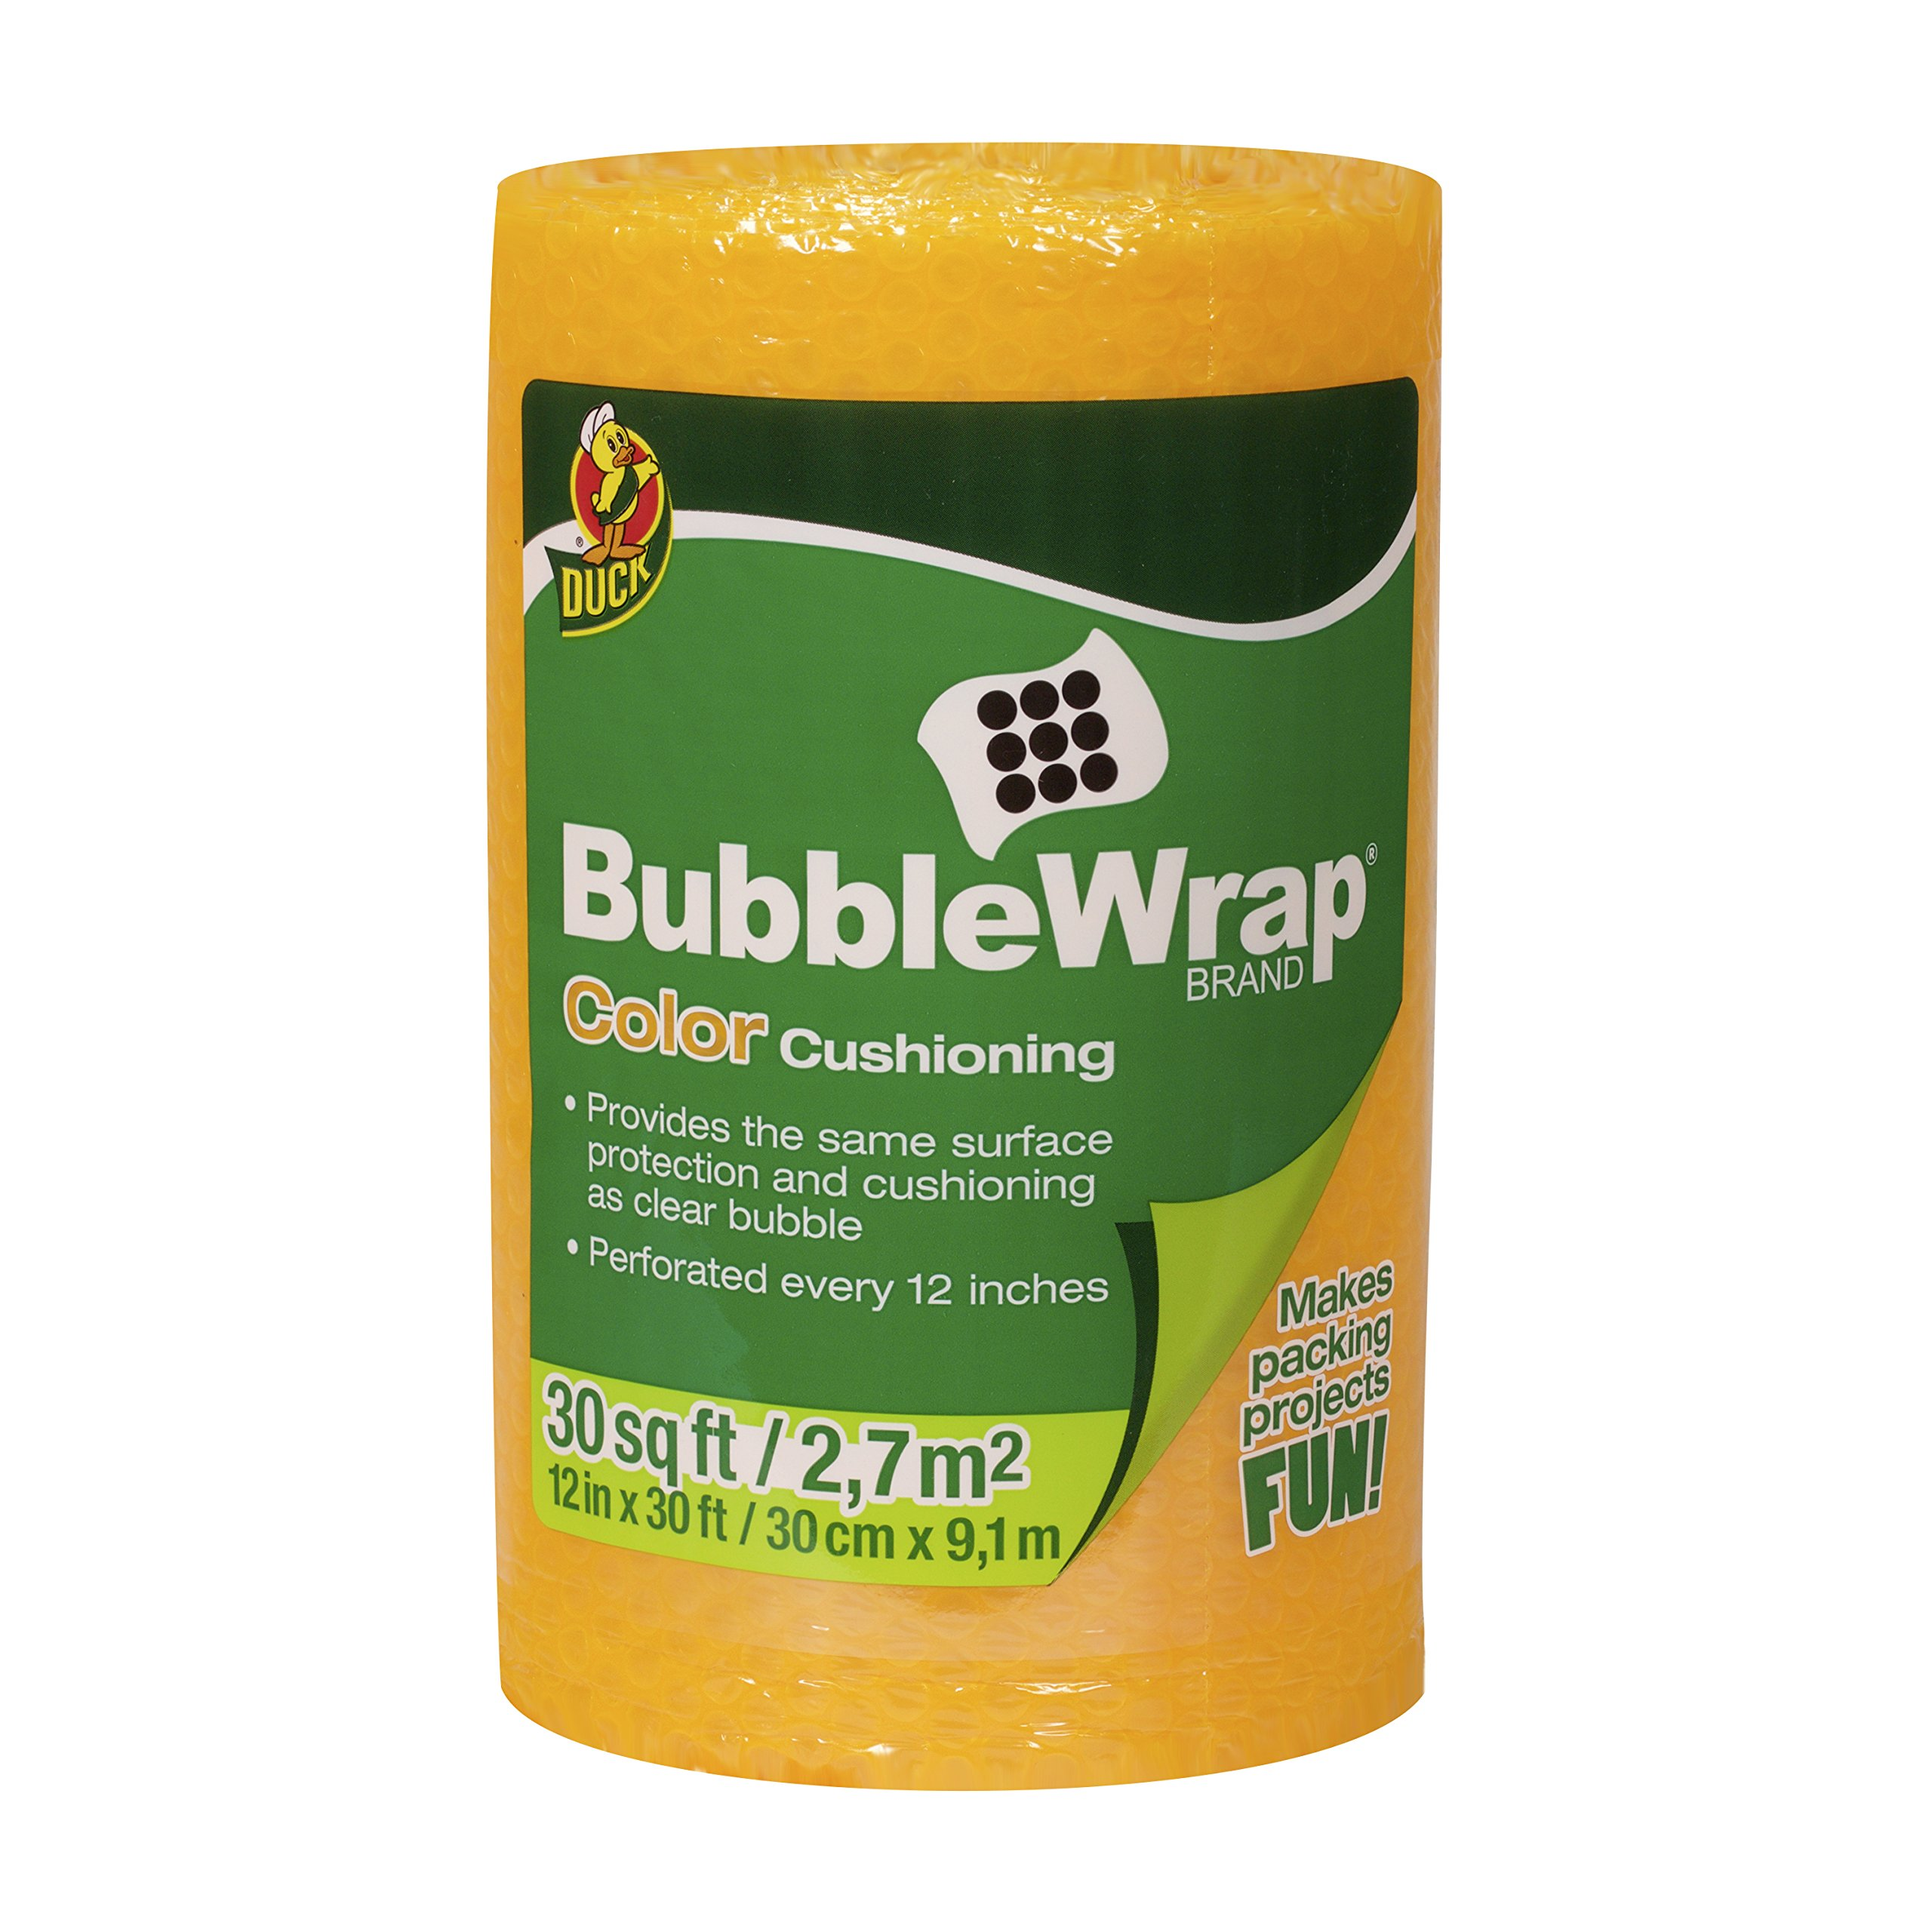 Duck Brand Bubble Wrap Color Cushioning, 12 Inches Wide x 30 Feet Long, Single Roll, Orange (282477)